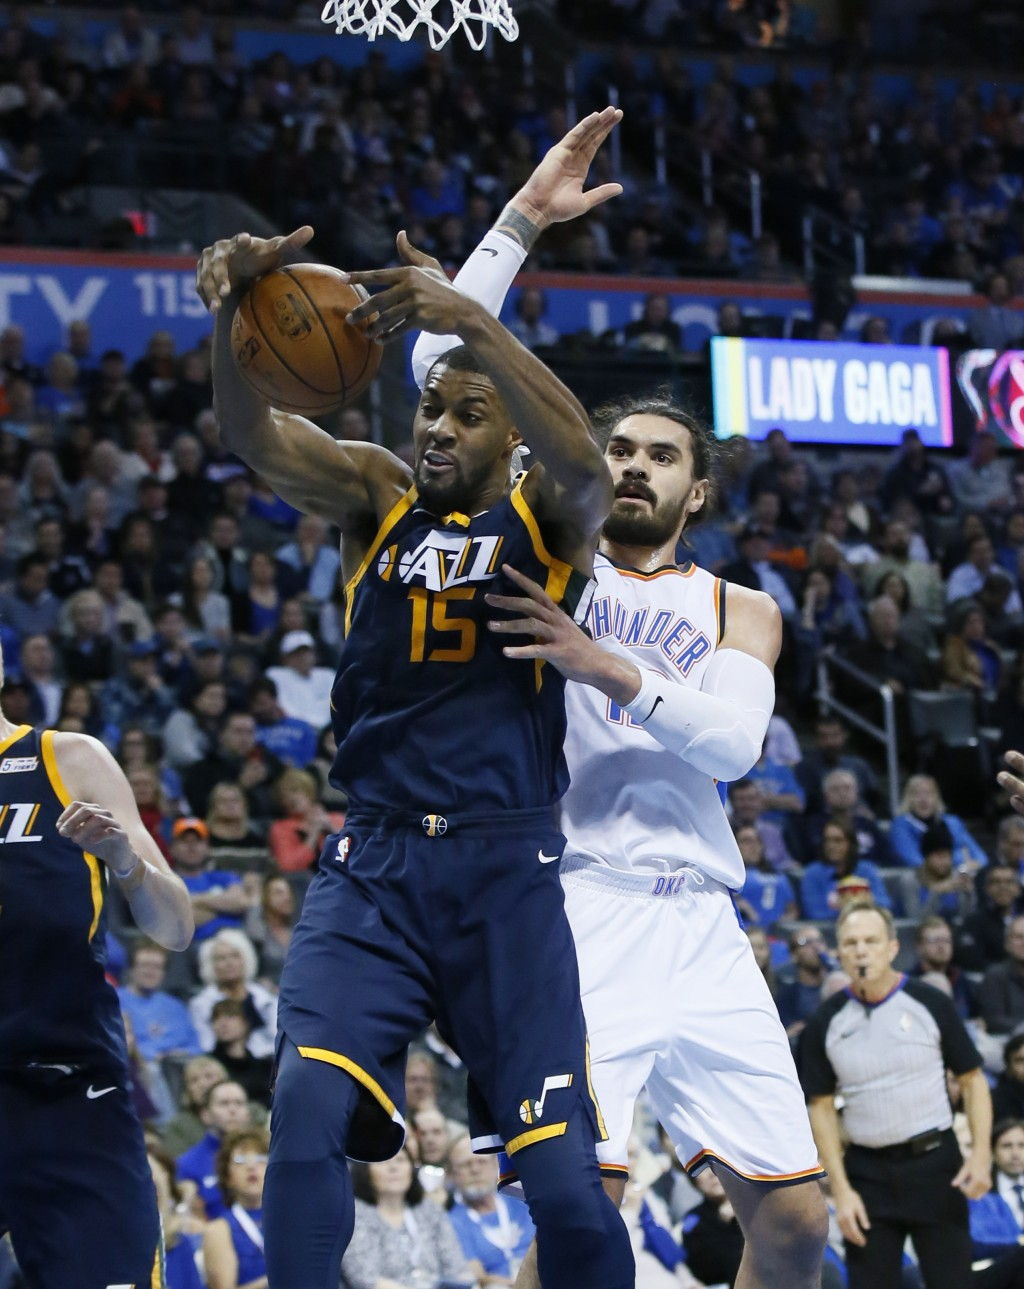 Utah Jazz forward Derrick Favors (15) grabs a rebound in front of Oklahoma City Thunder center Steven Adams, right, in the second quarter of an NBA ba